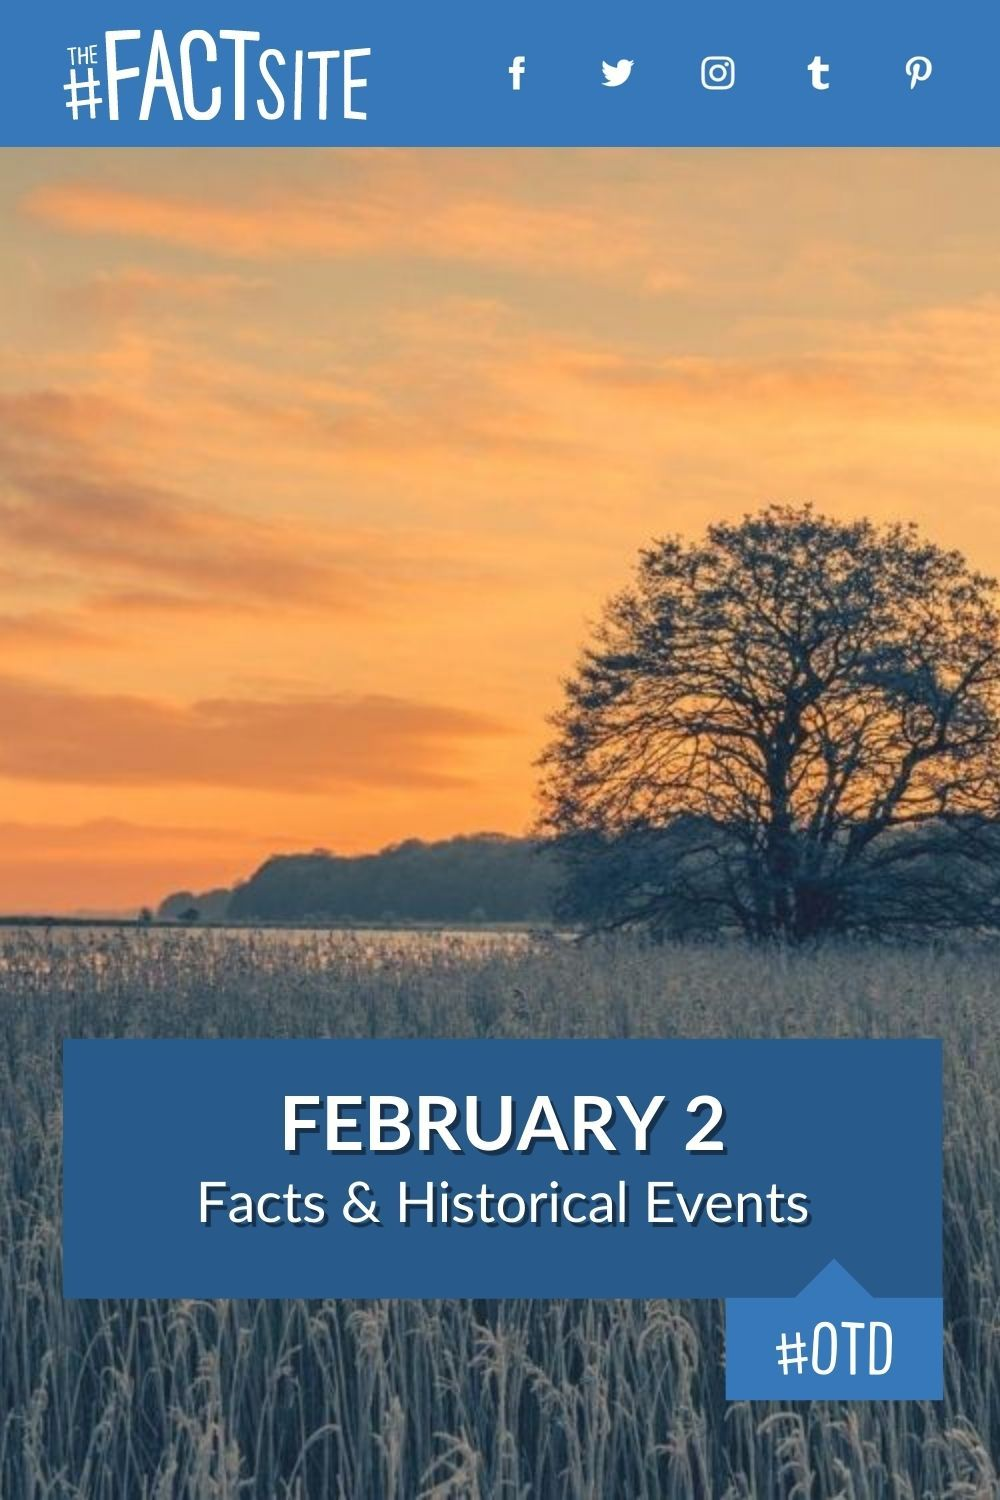 Facts & Historic Events That Happened on February 2